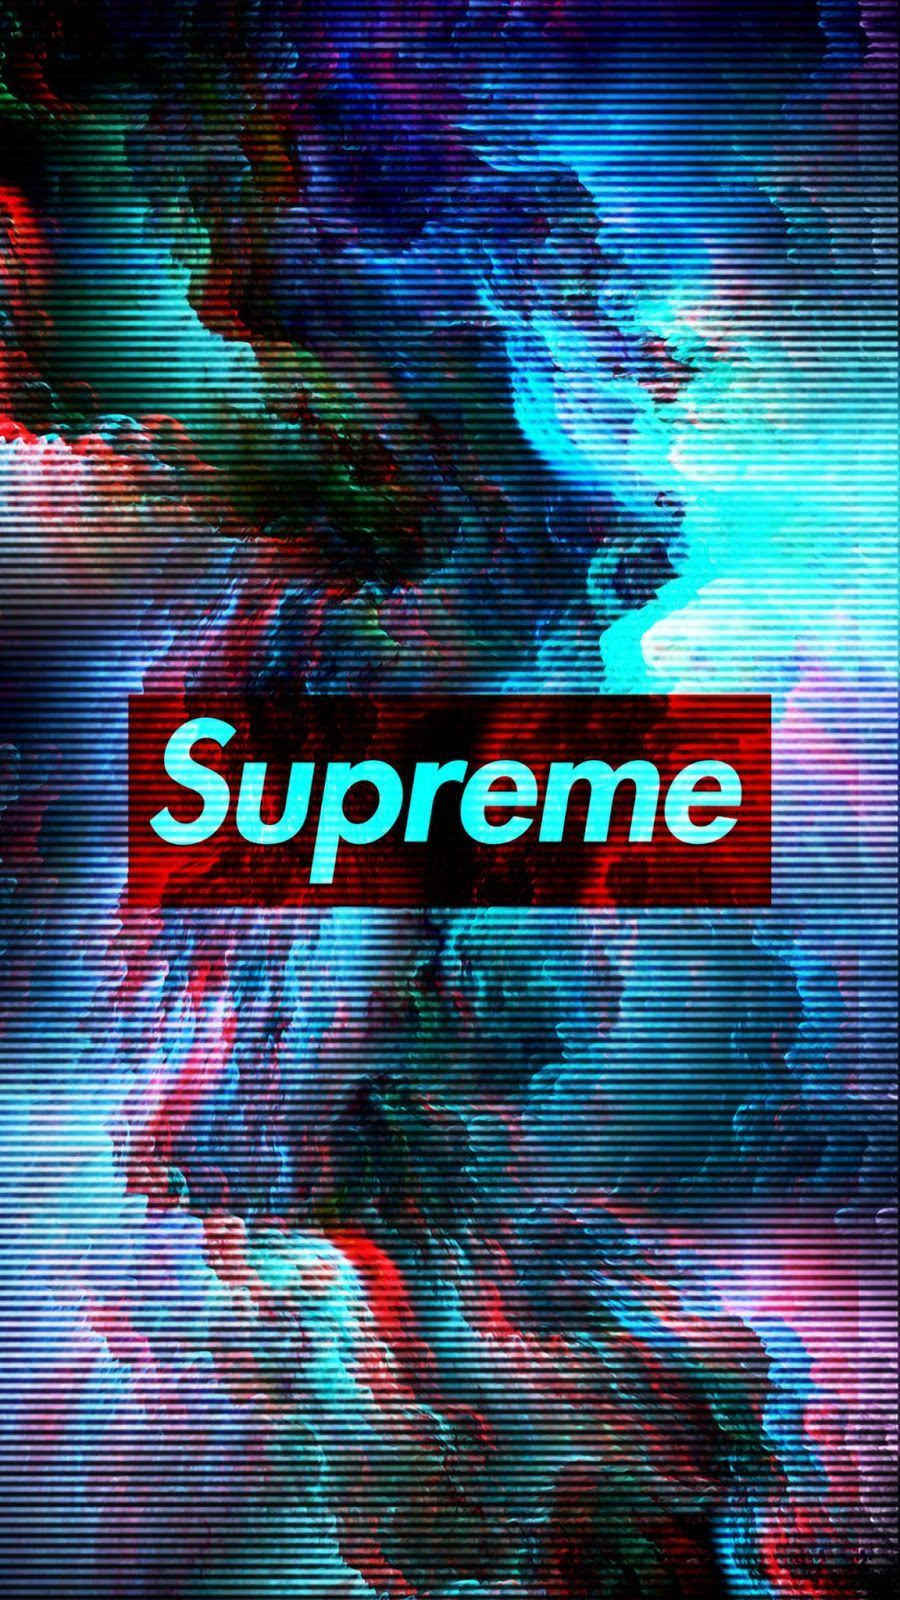 Cool Wallpapers Of Supreme